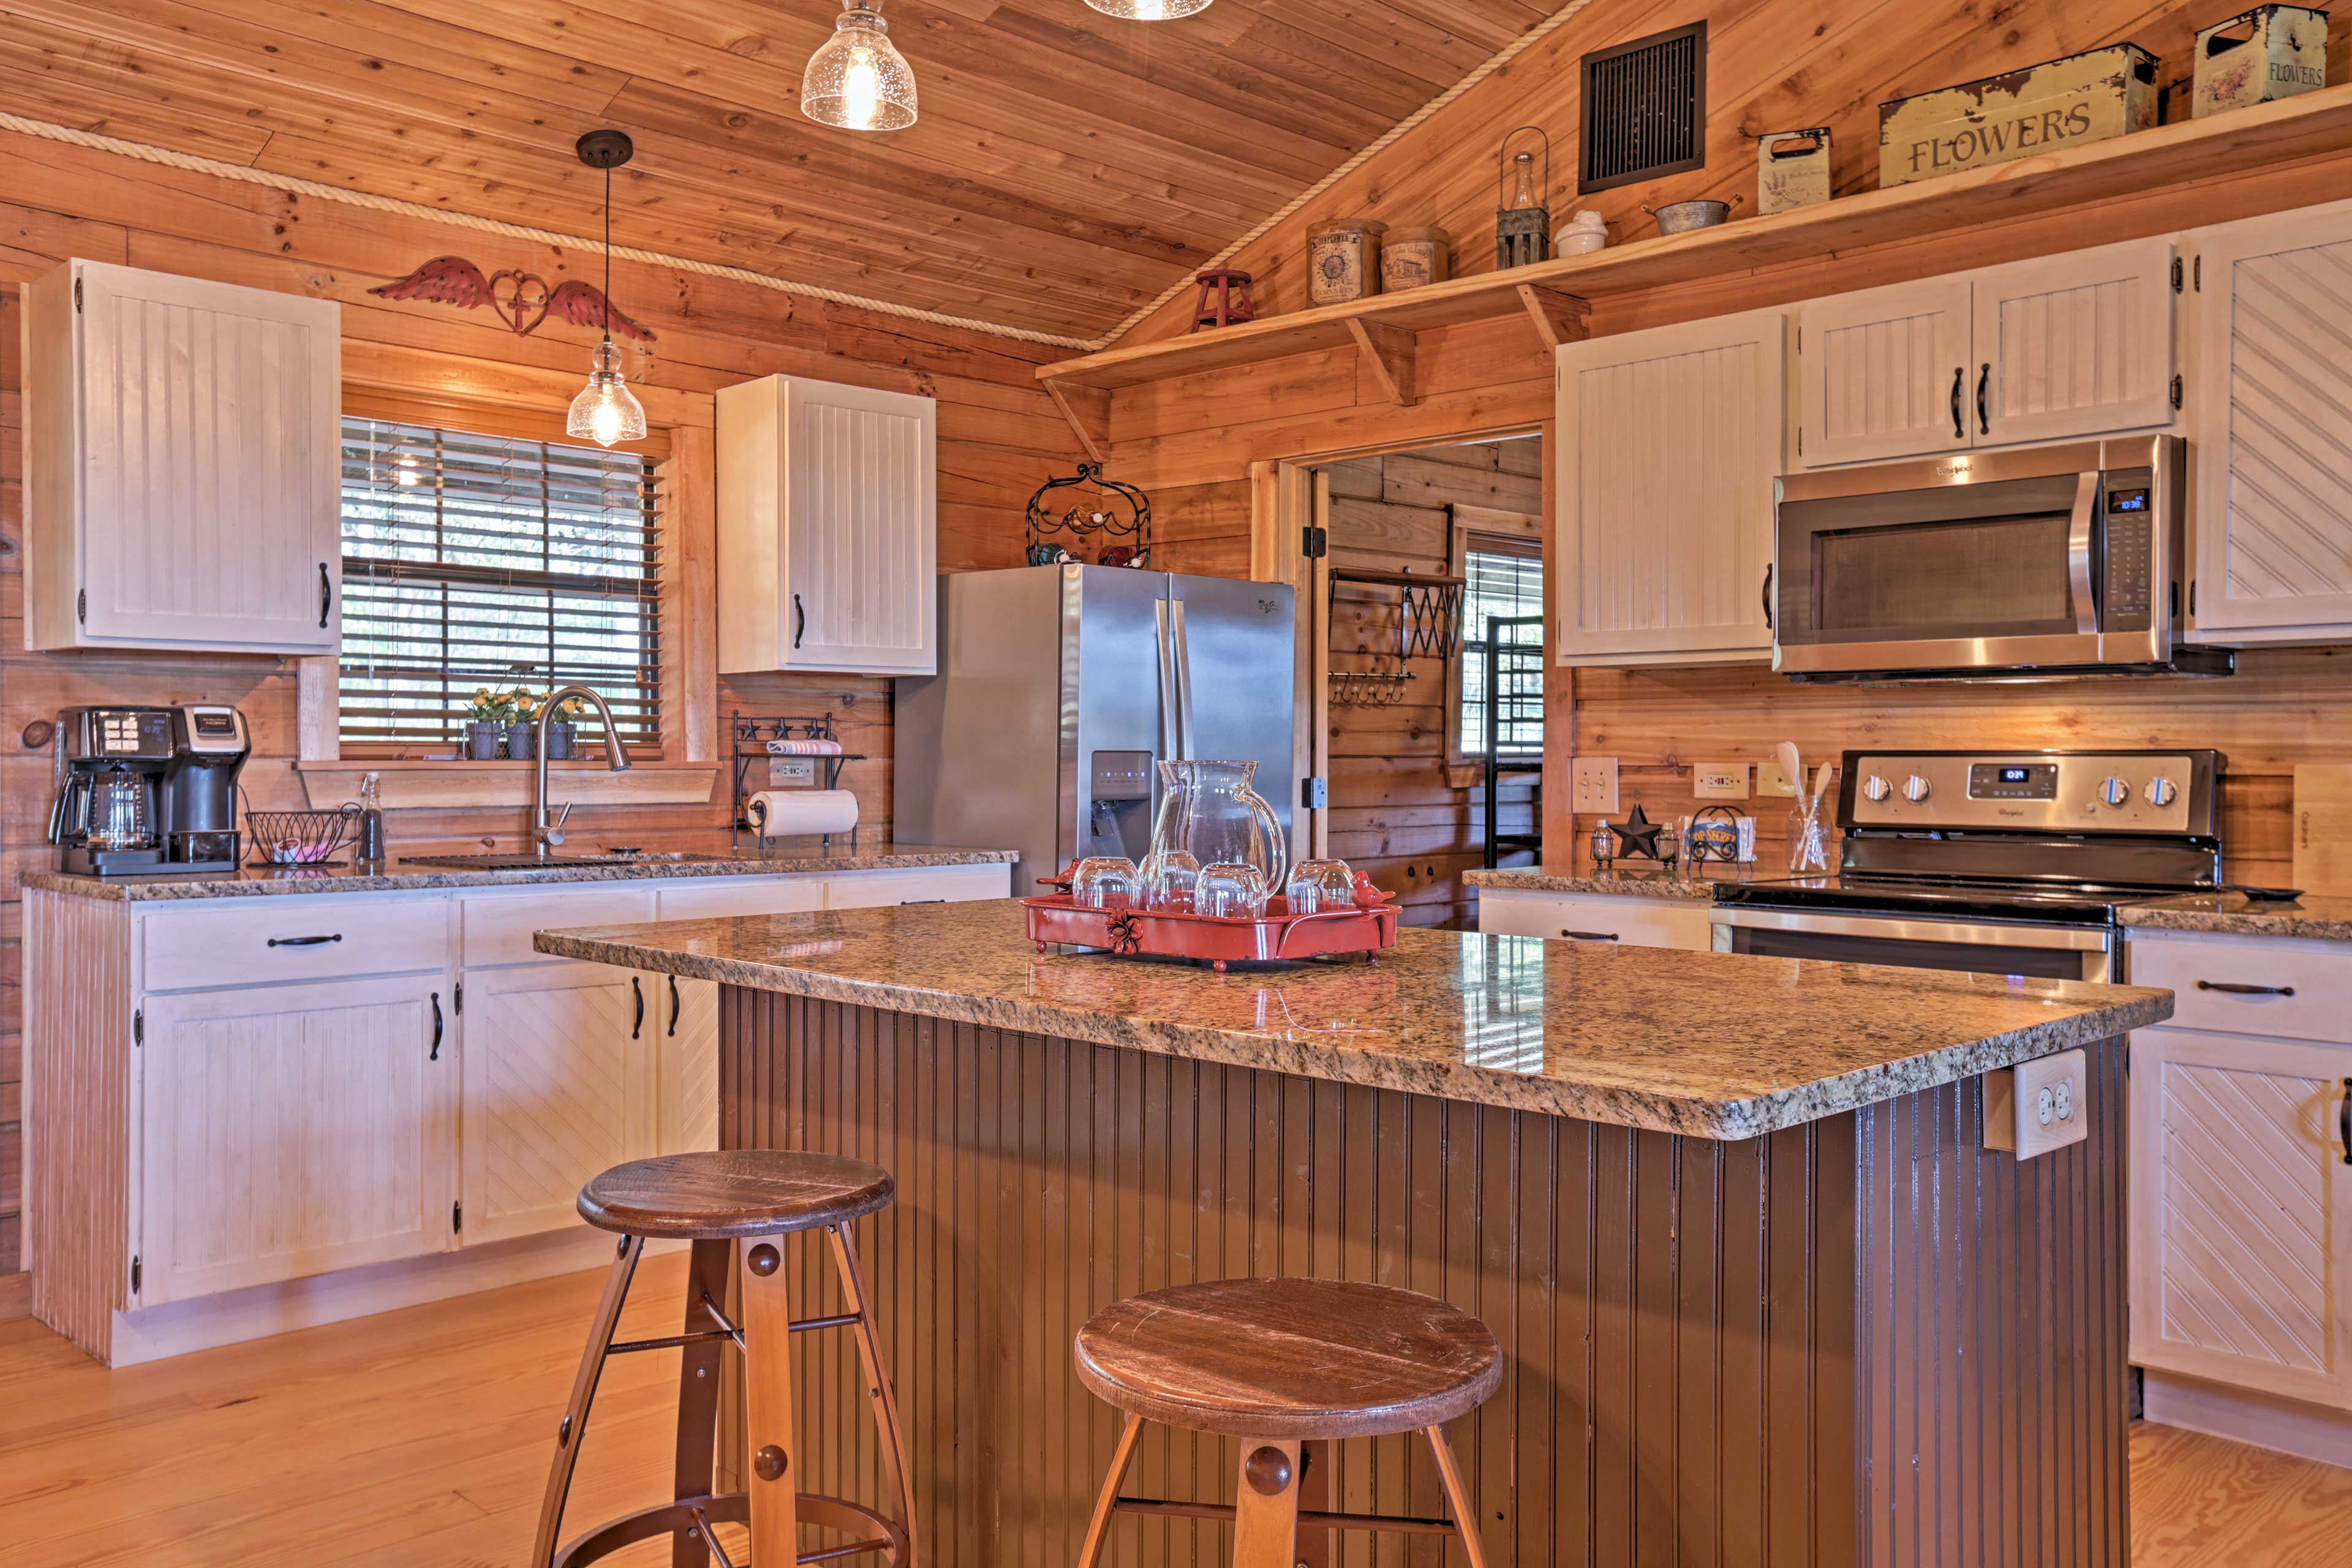 The kitchen is fully equipped with a large center island and seating for 2.